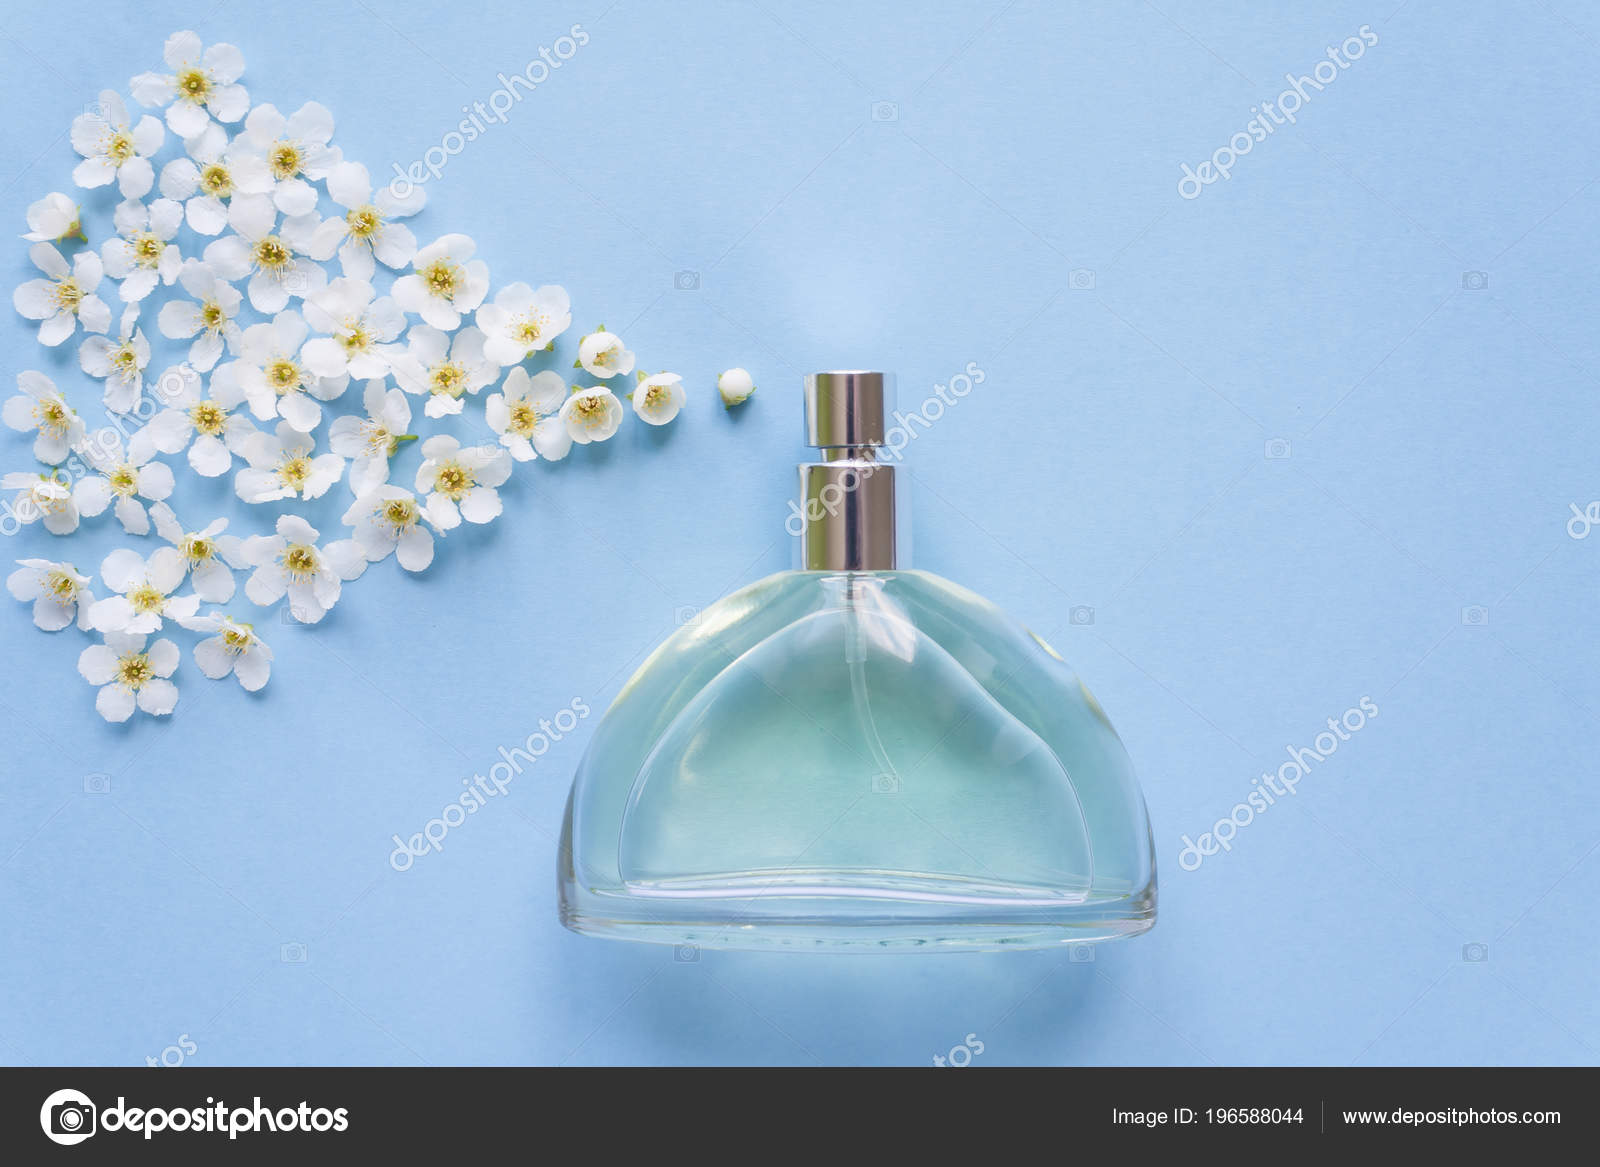 Flower arrangement flowers fragrance perfume blue background stock flower arrangement flowers fragrance perfume blue background stock photo izmirmasajfo